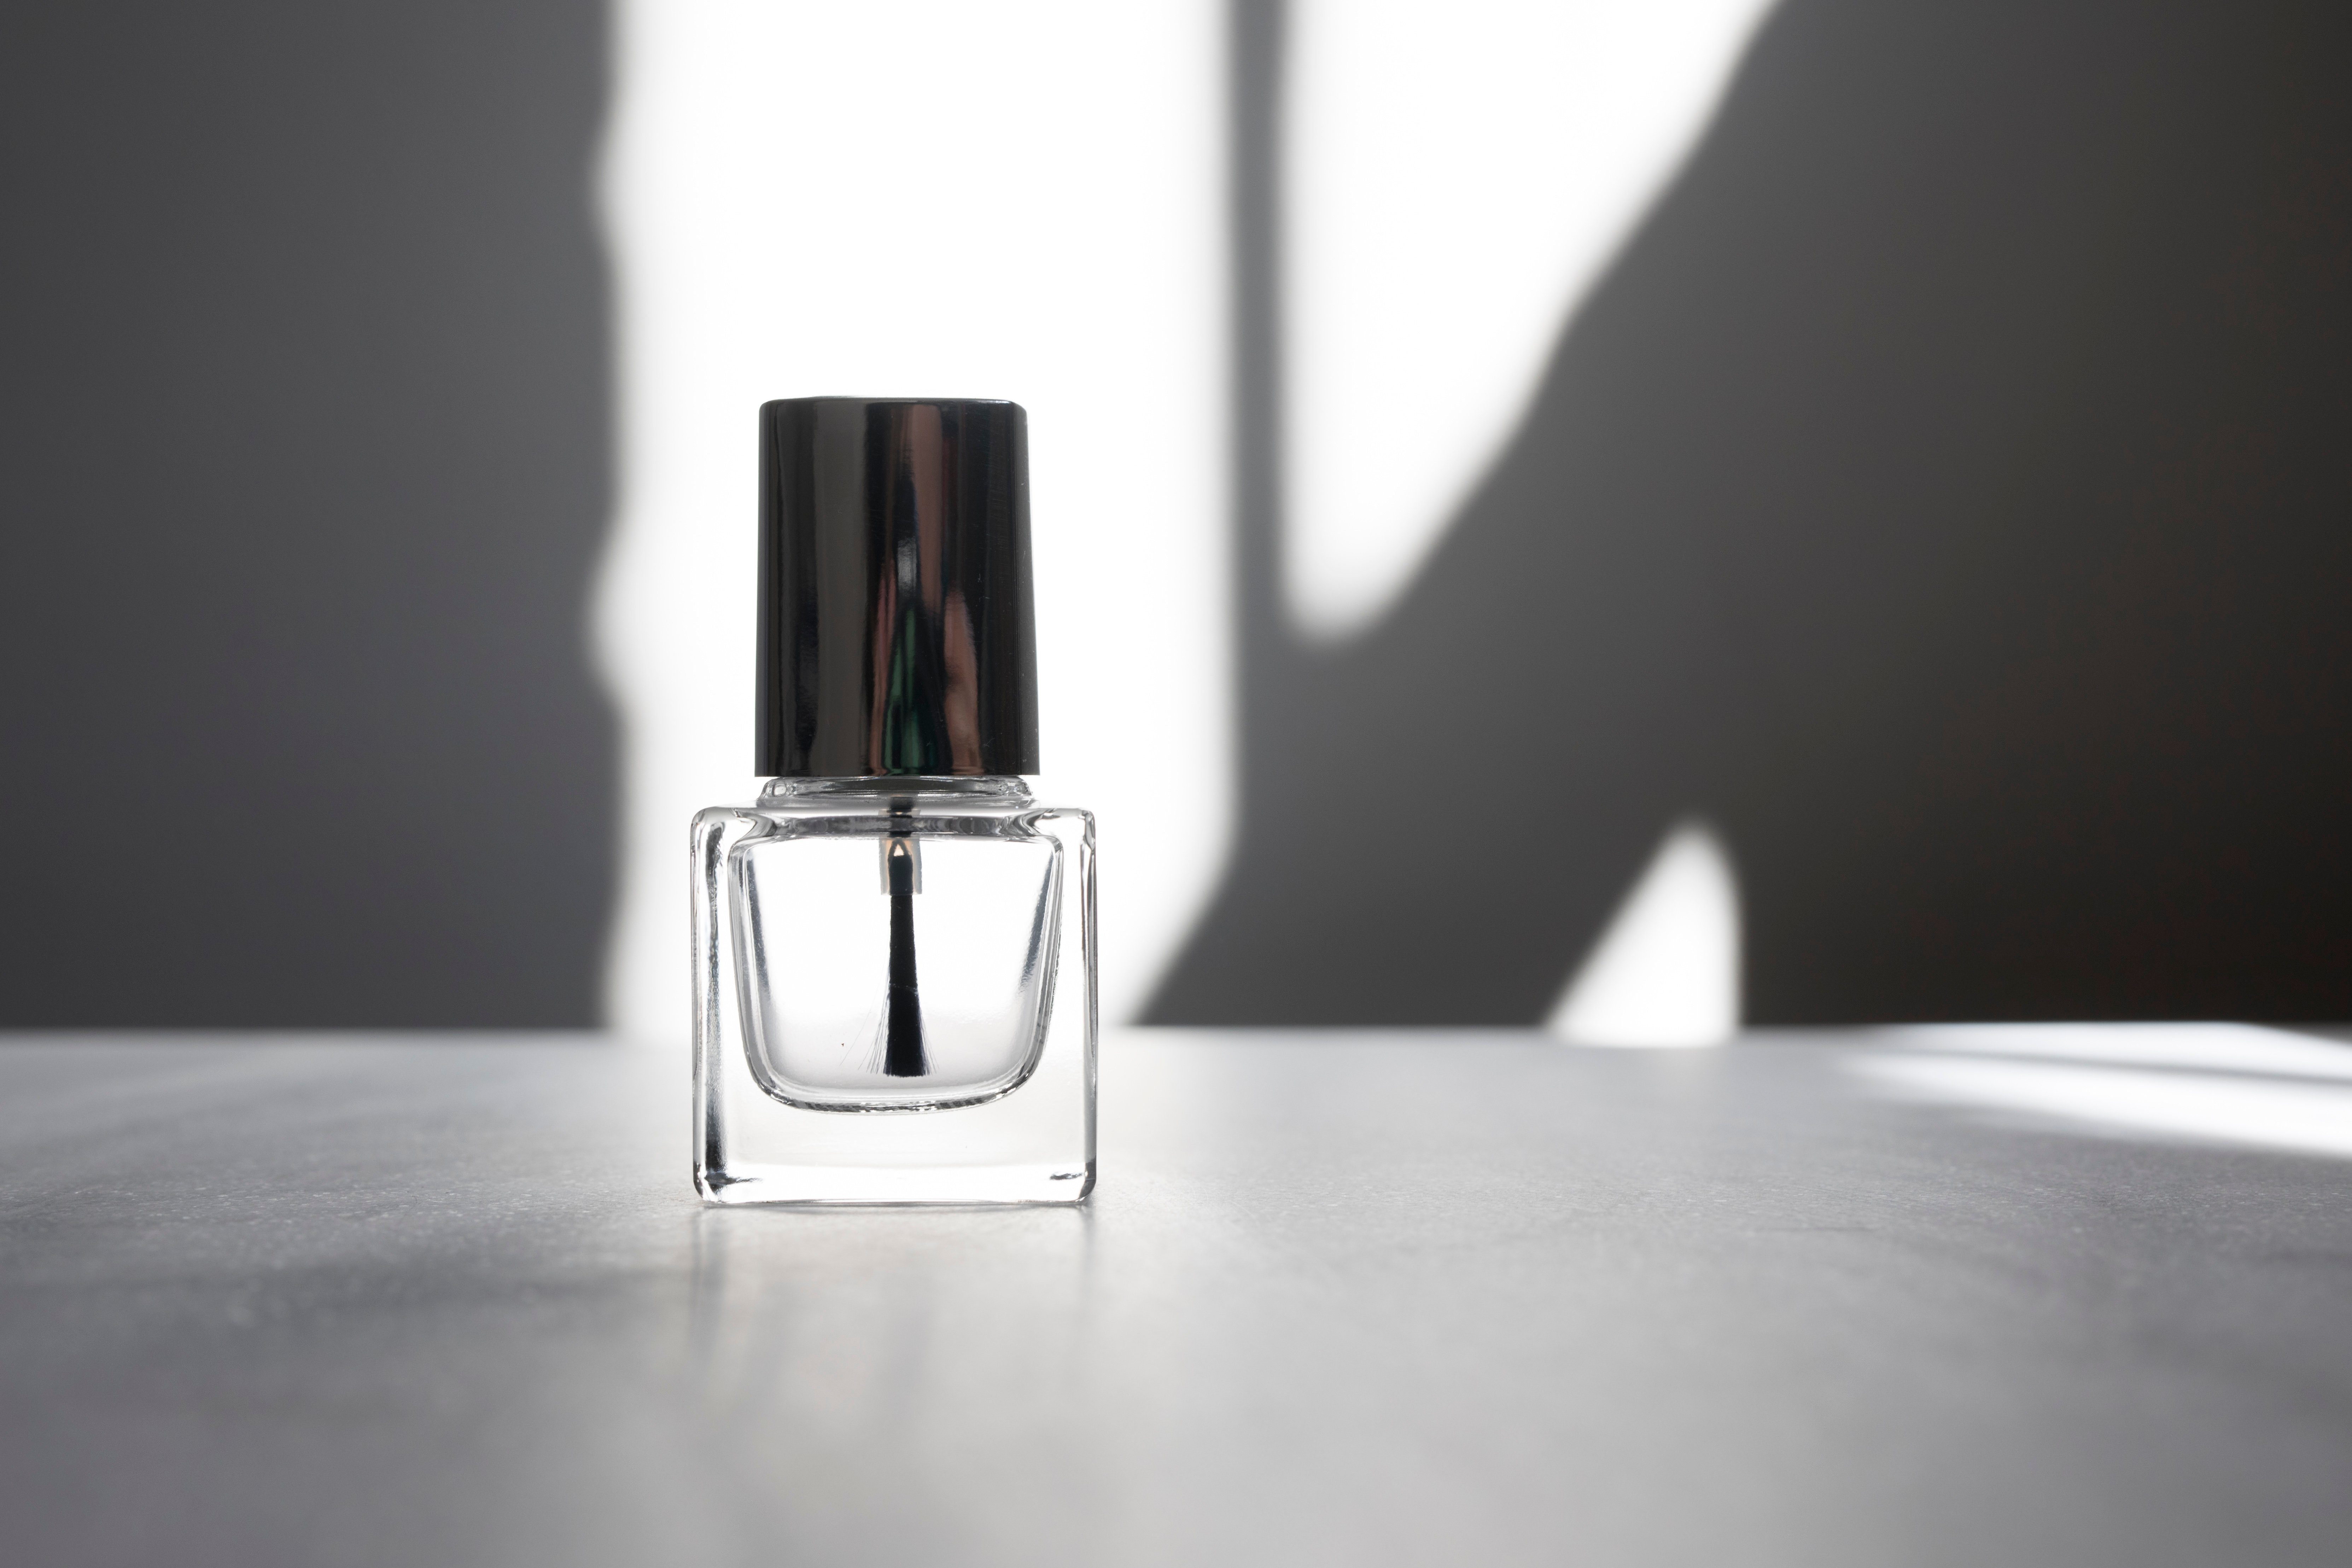 View of a simple clear glass nailpolish bottle with silver top against a white background which shdows cast by a near by window